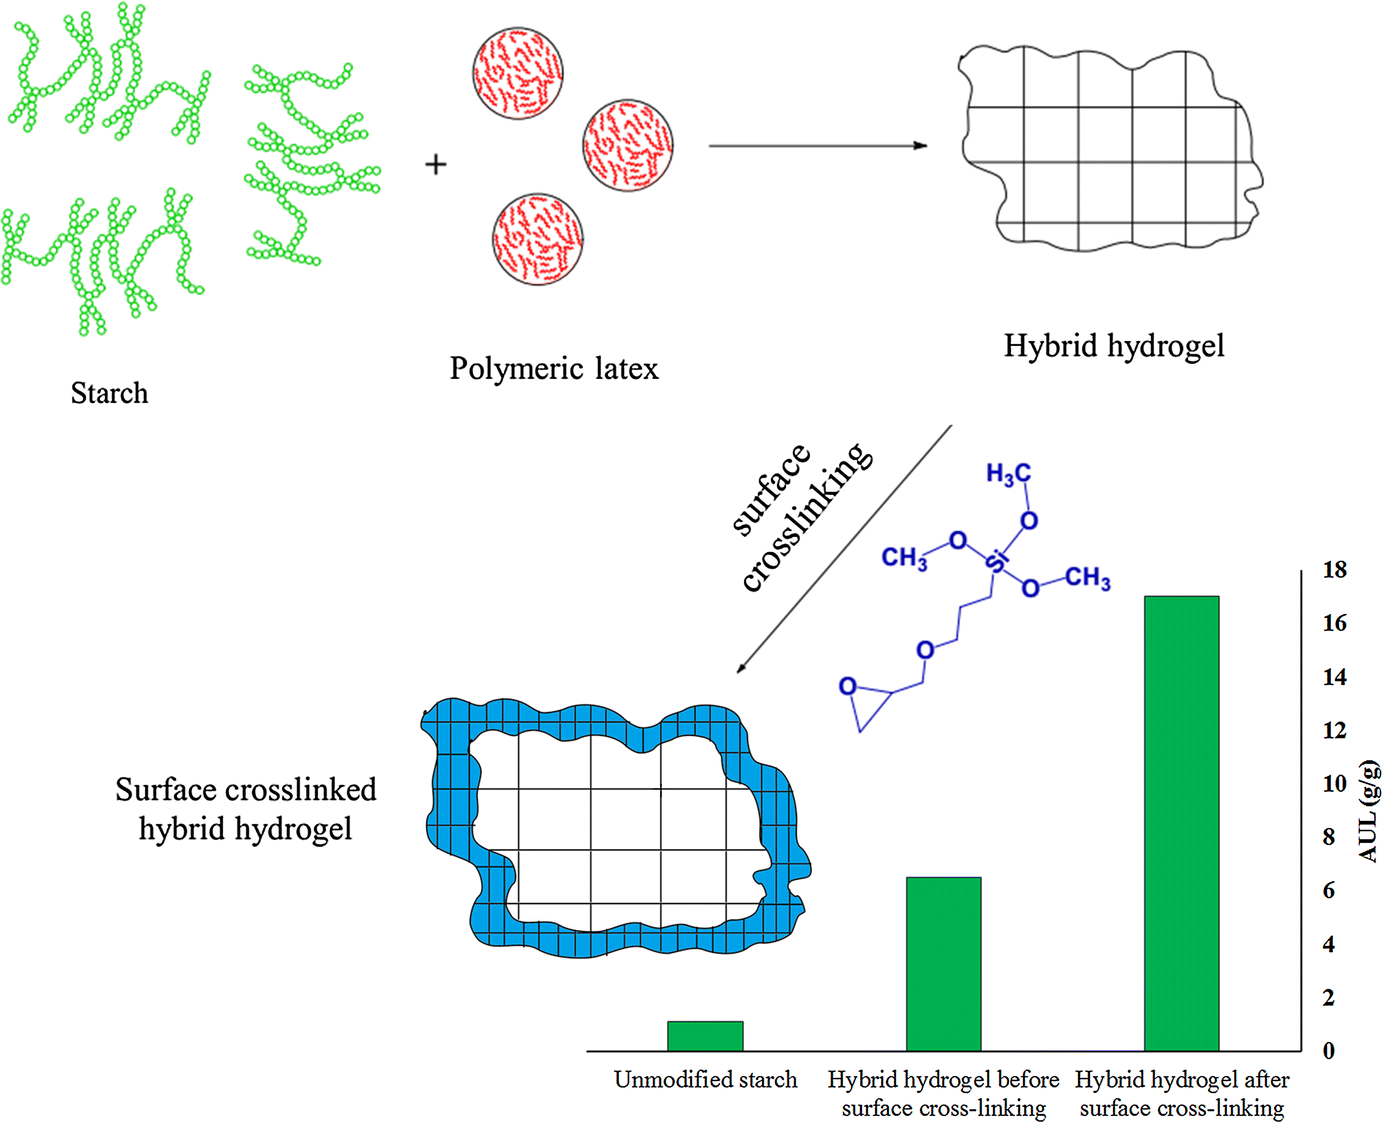 High gel-strength hybrid hydrogels based on modified starch